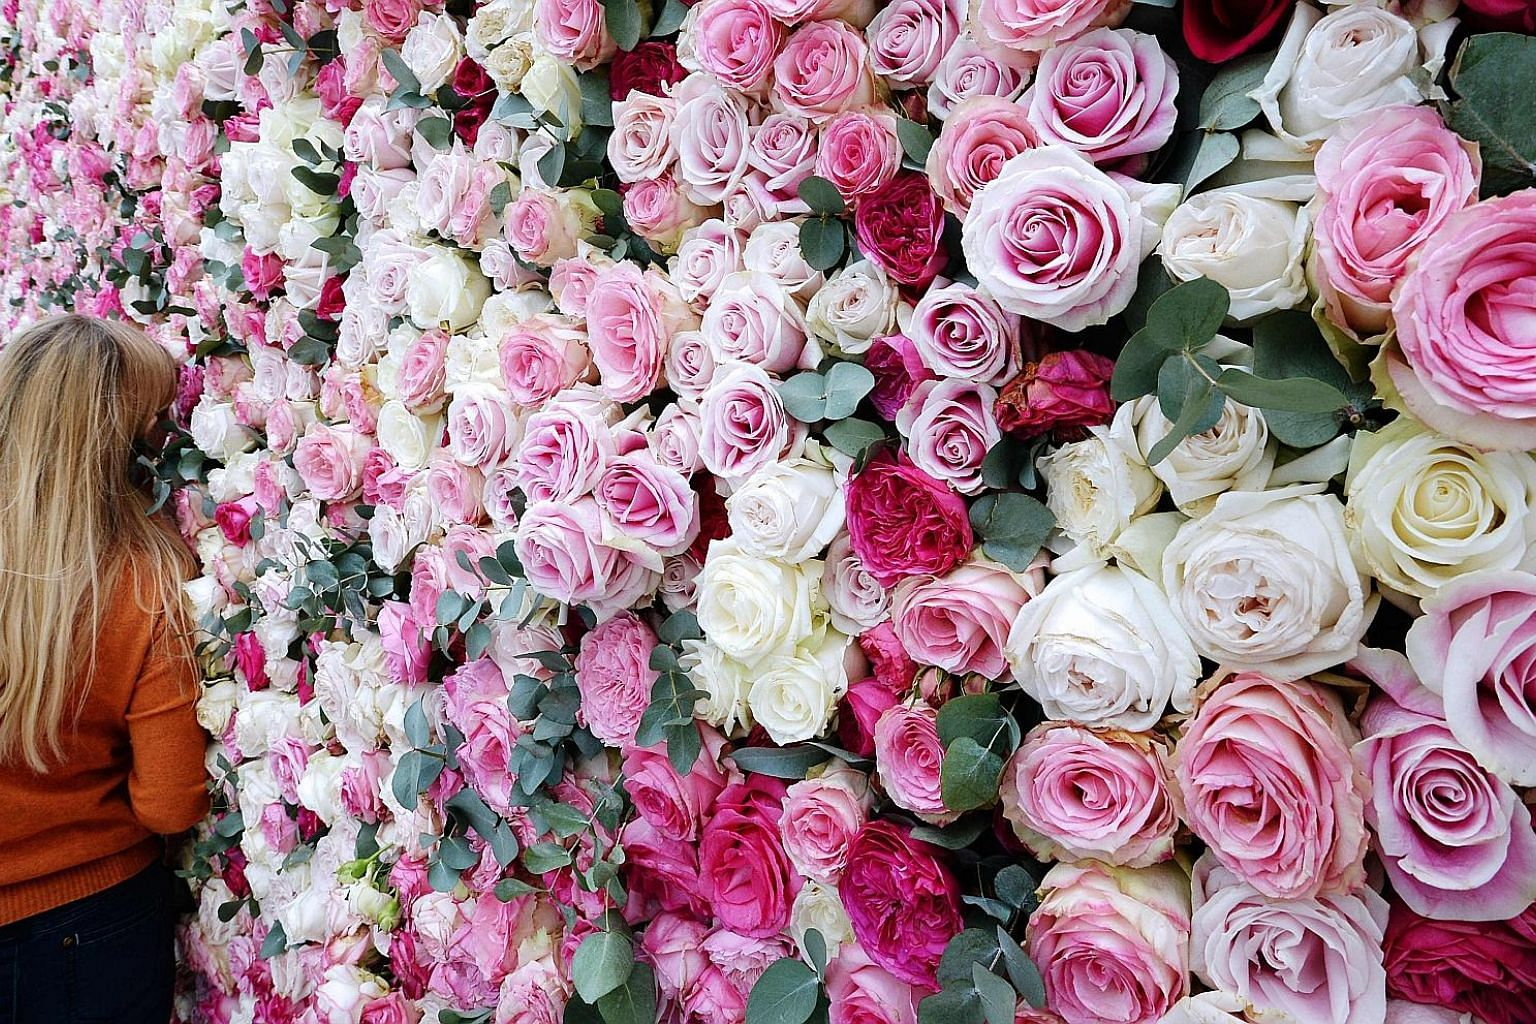 Over the centuries, roses have been bred for longer blooms and petals in every hue. However, this has dulled the smell of the flower. Now, researchers know where to tinker in the genome to enhance the scent.